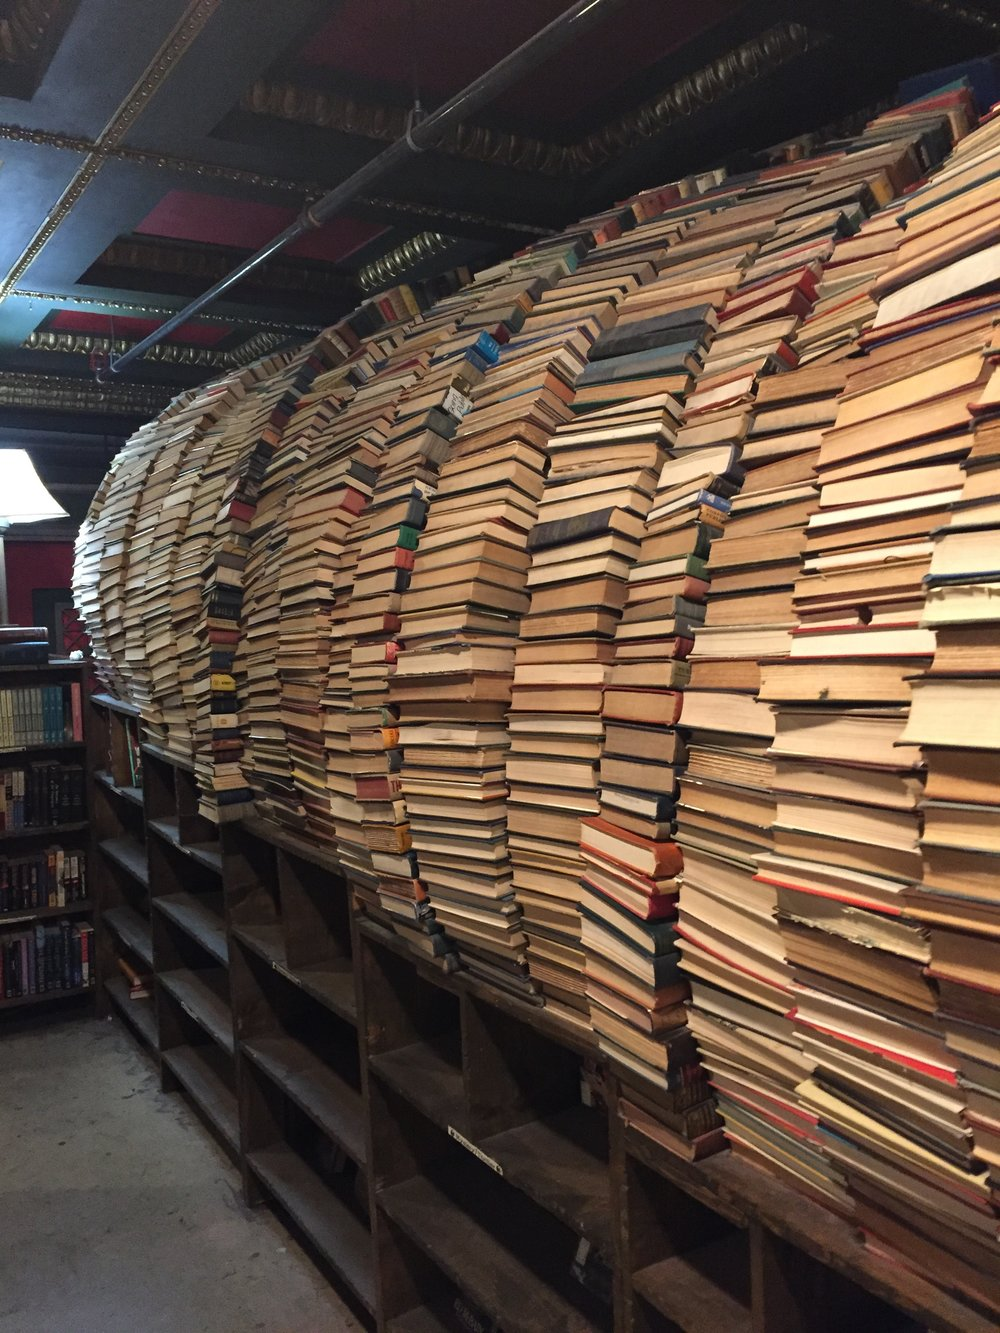 [image description: A view of the back of the aforementioned archway of books over the ramp. It's a wall of stacked books, curving from the top of wide, low shelf at the bottom to the wall where it meets the ceiling on the other side.]